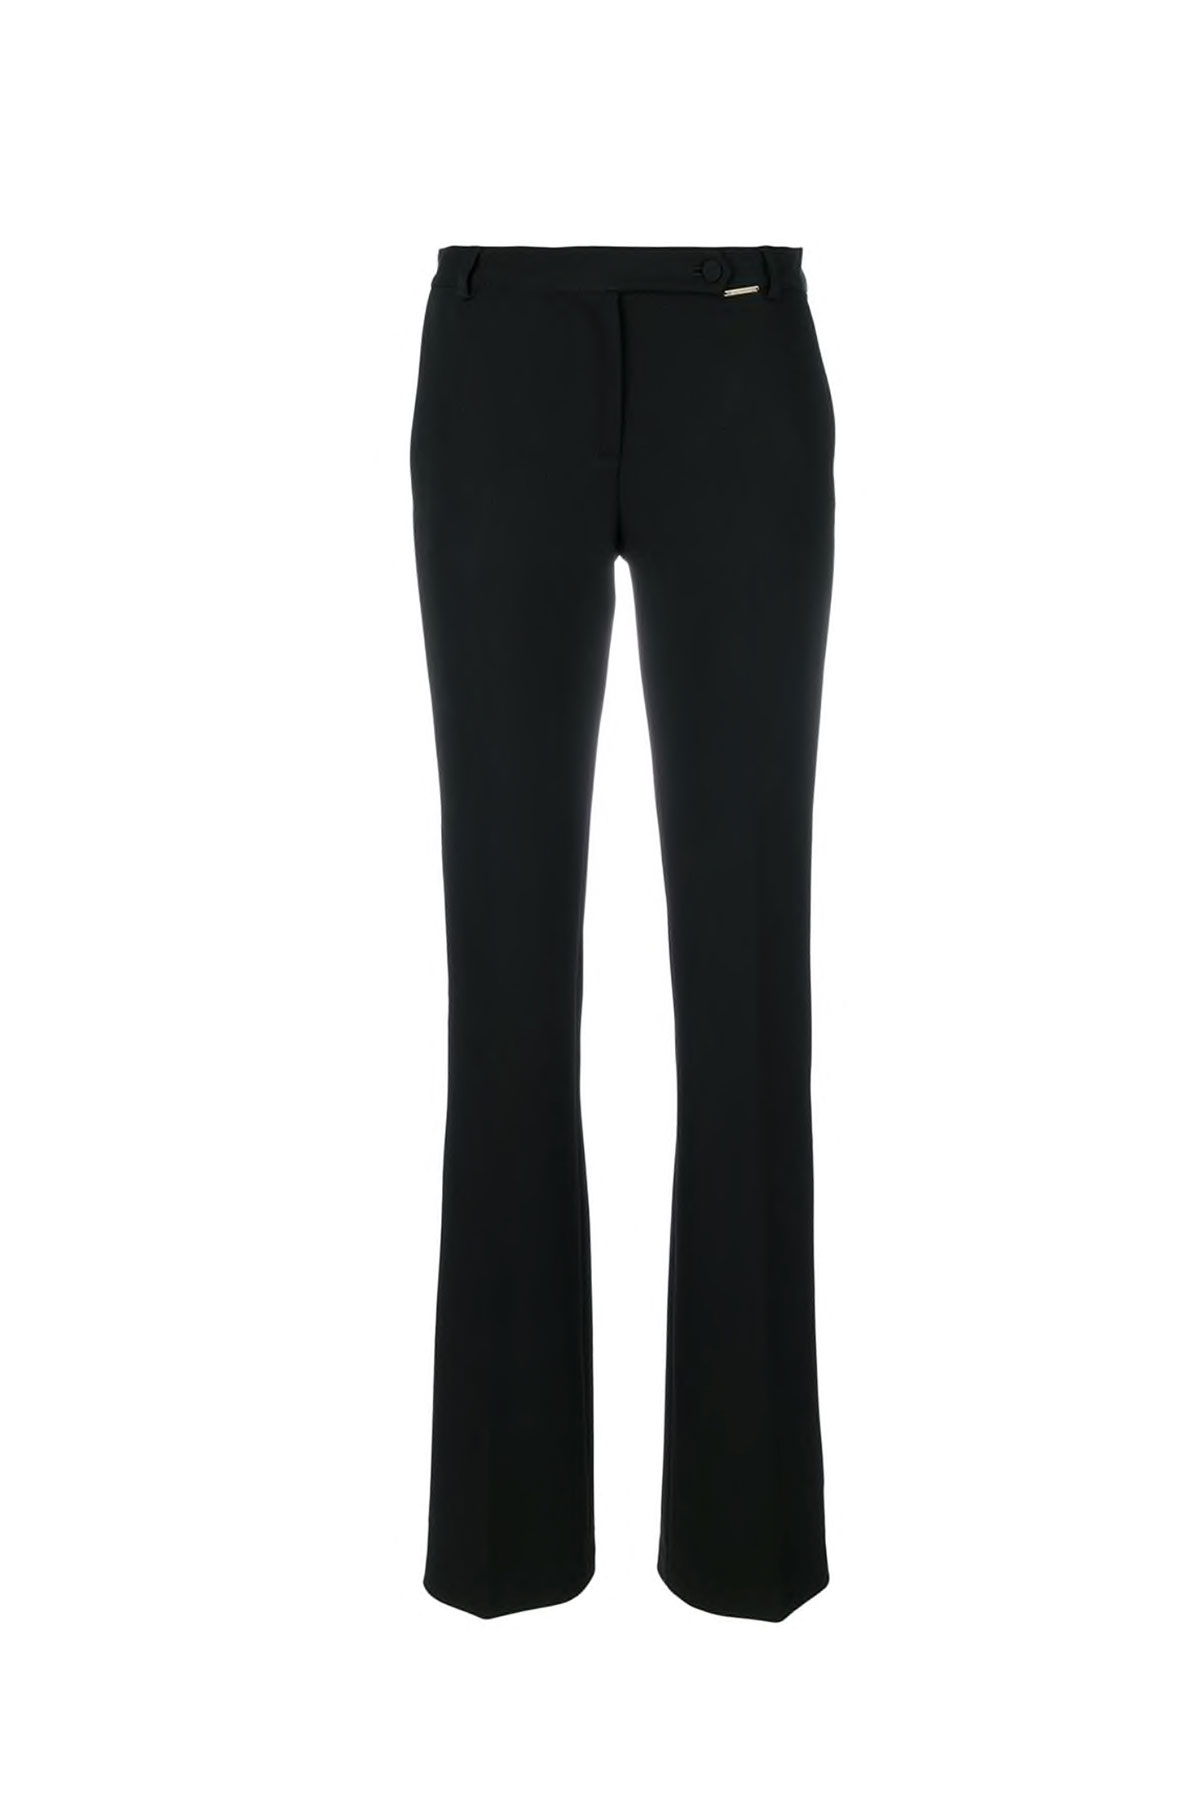 BLACK FLARED PANTS WITH BLACK STRIPE